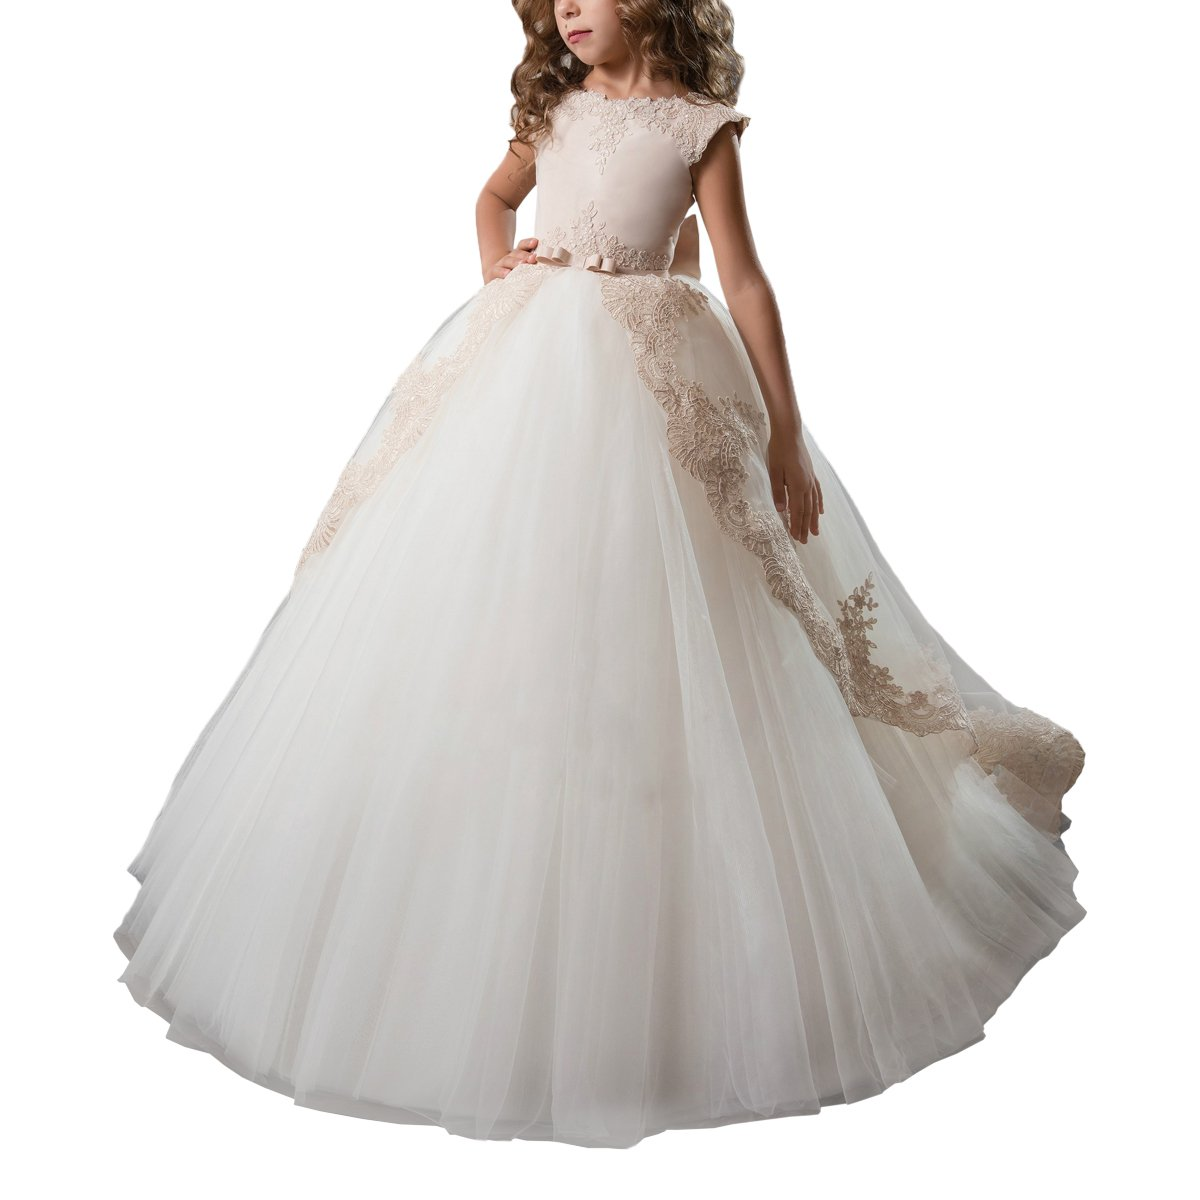 d44bd0f3ca Beautiful flower girl dress with multilayered skirt, corset with lace  applique, zipper, button, and lacing. Designed for comfort with no exposed  seams.